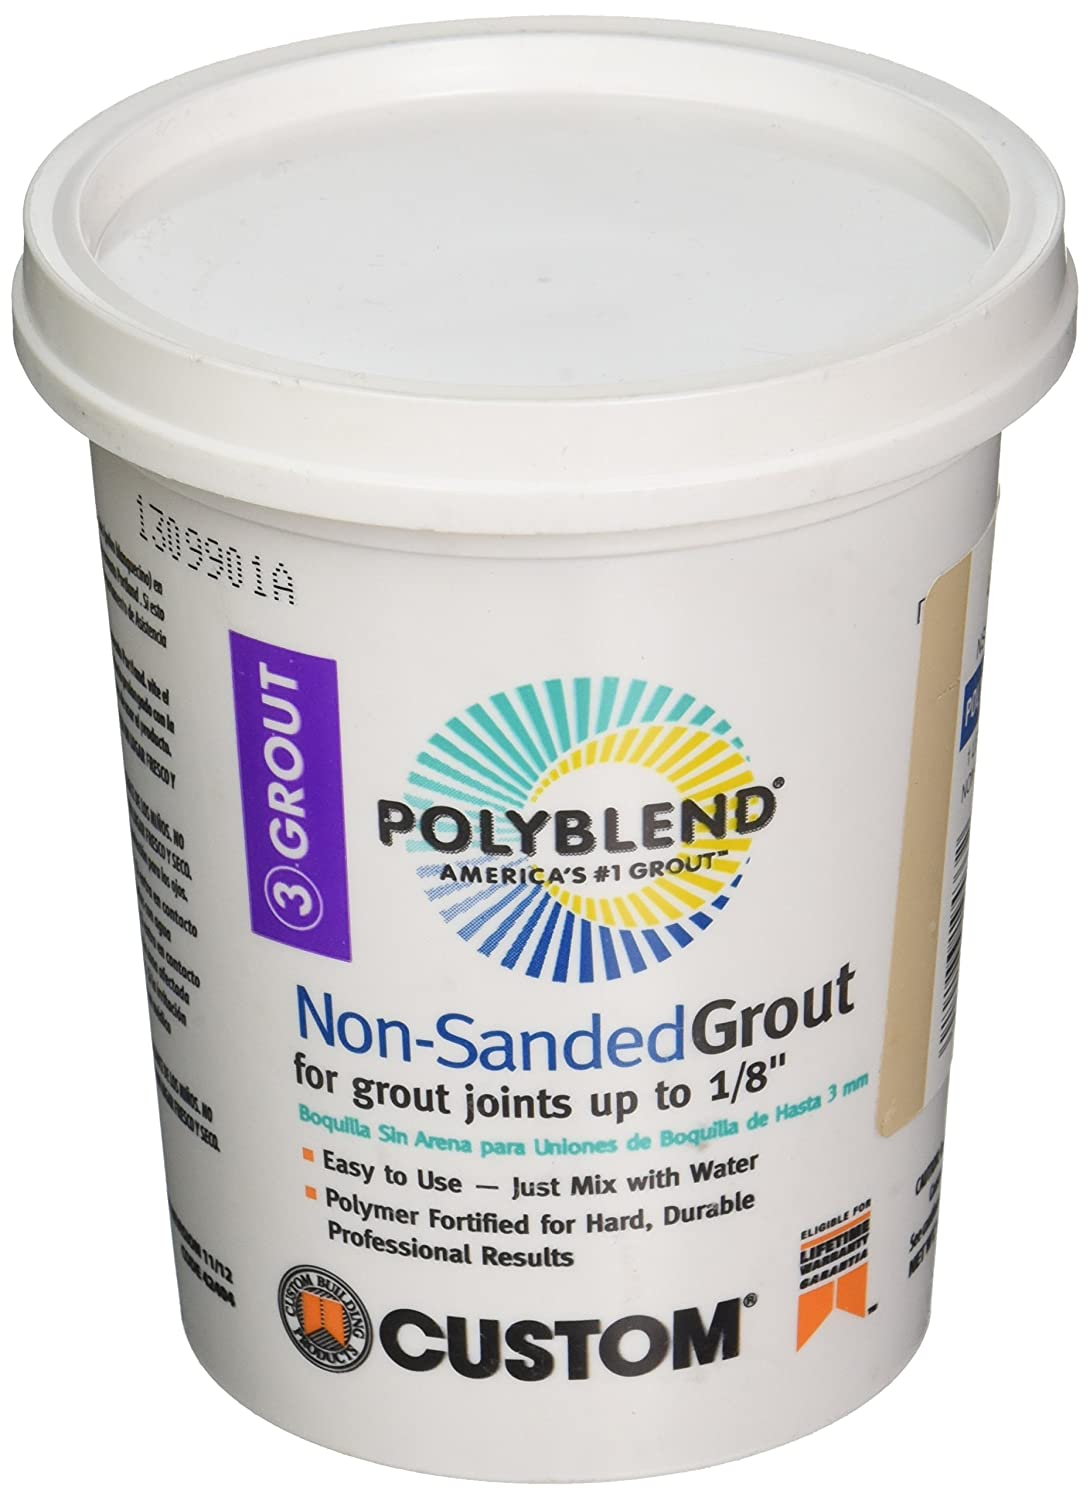 6.Polyblend Cement-Based Grout